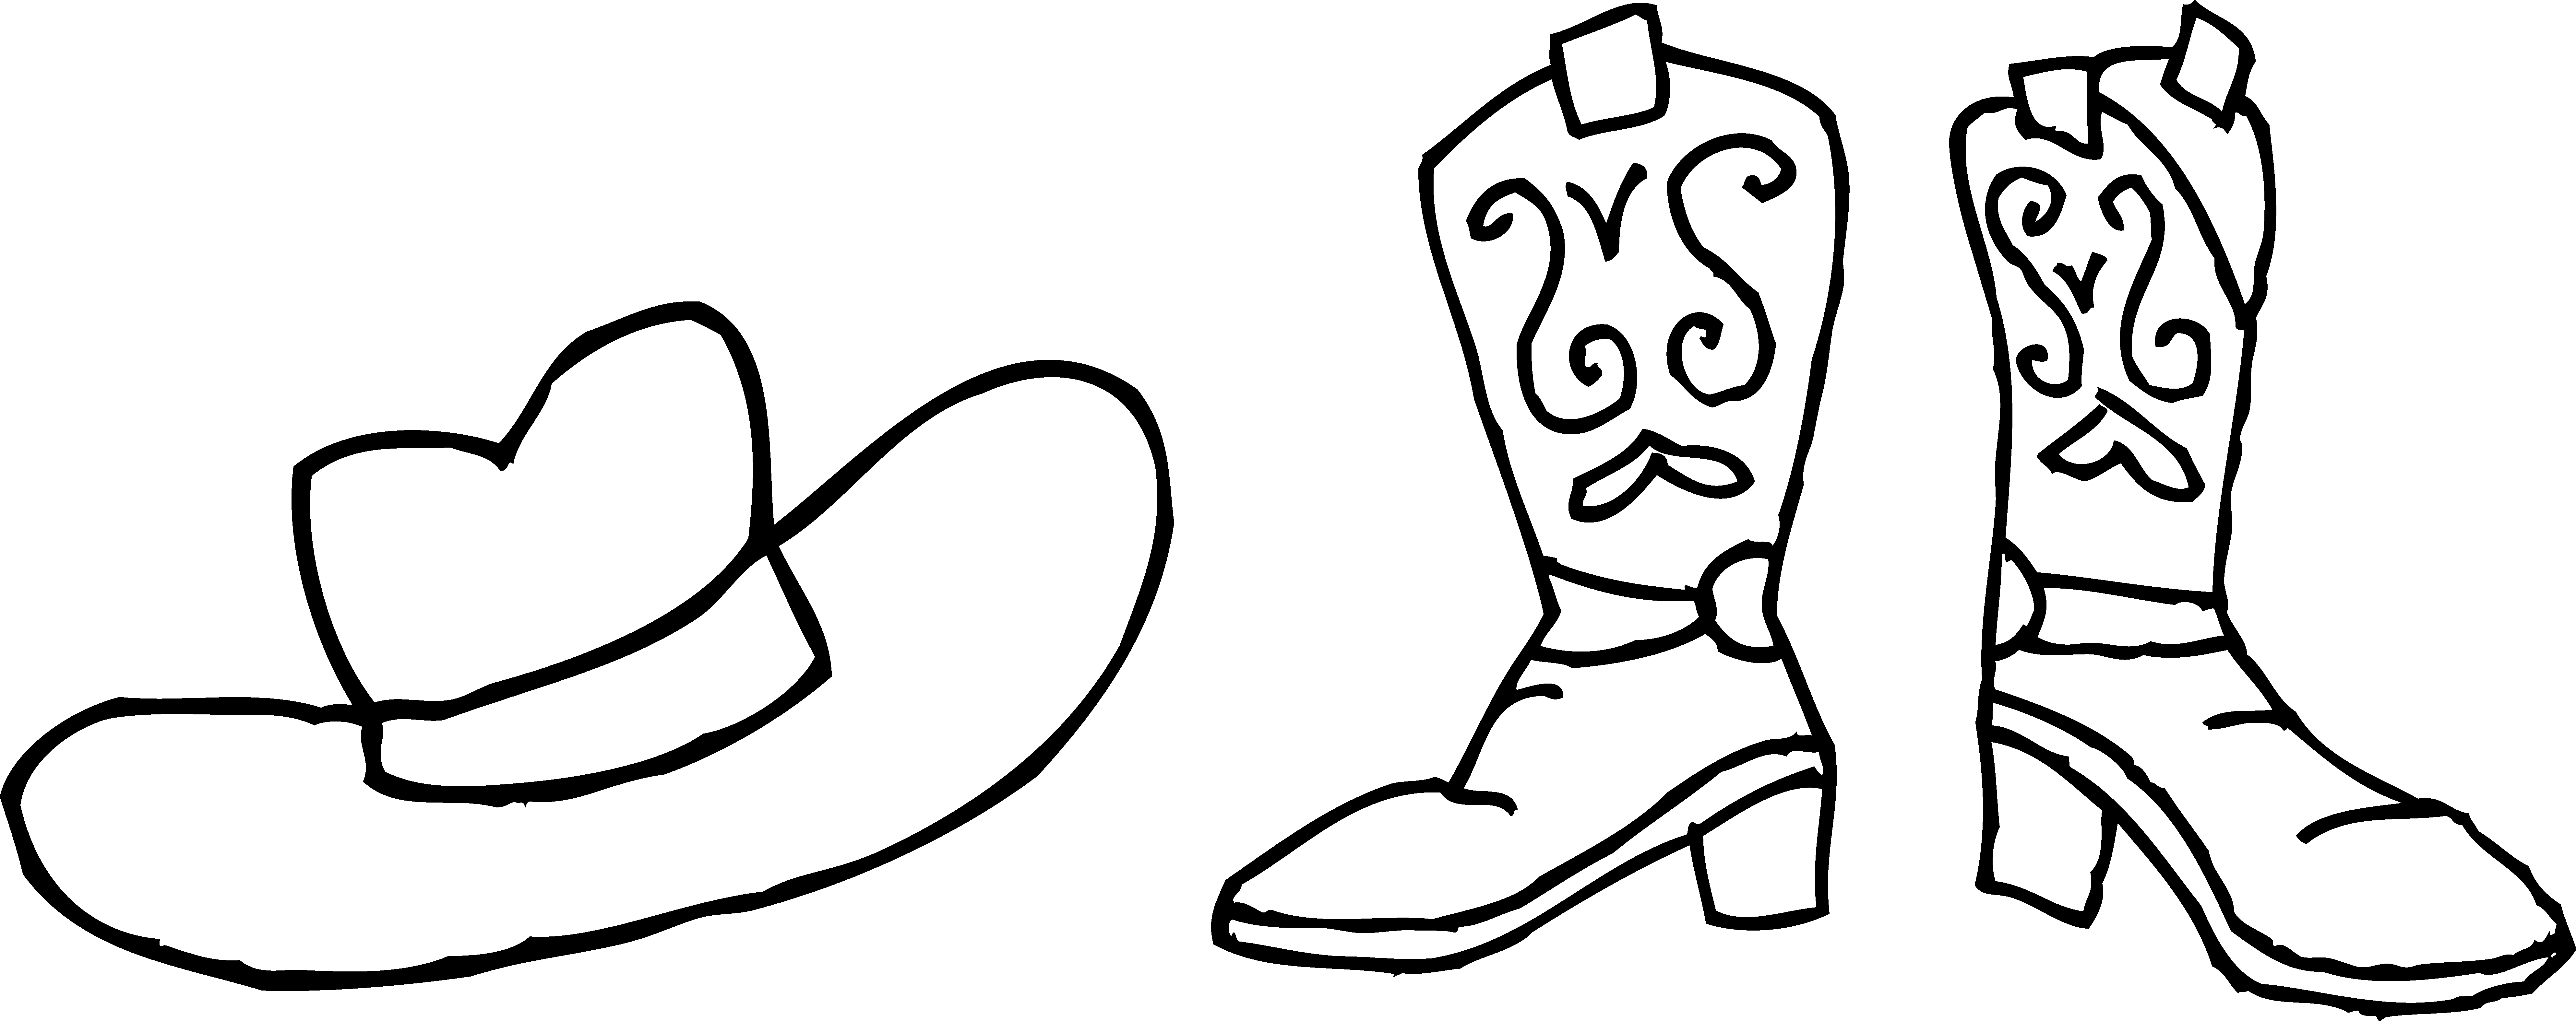 Cowboy Boots Clipart Black And White | Clipart Panda - Free ...